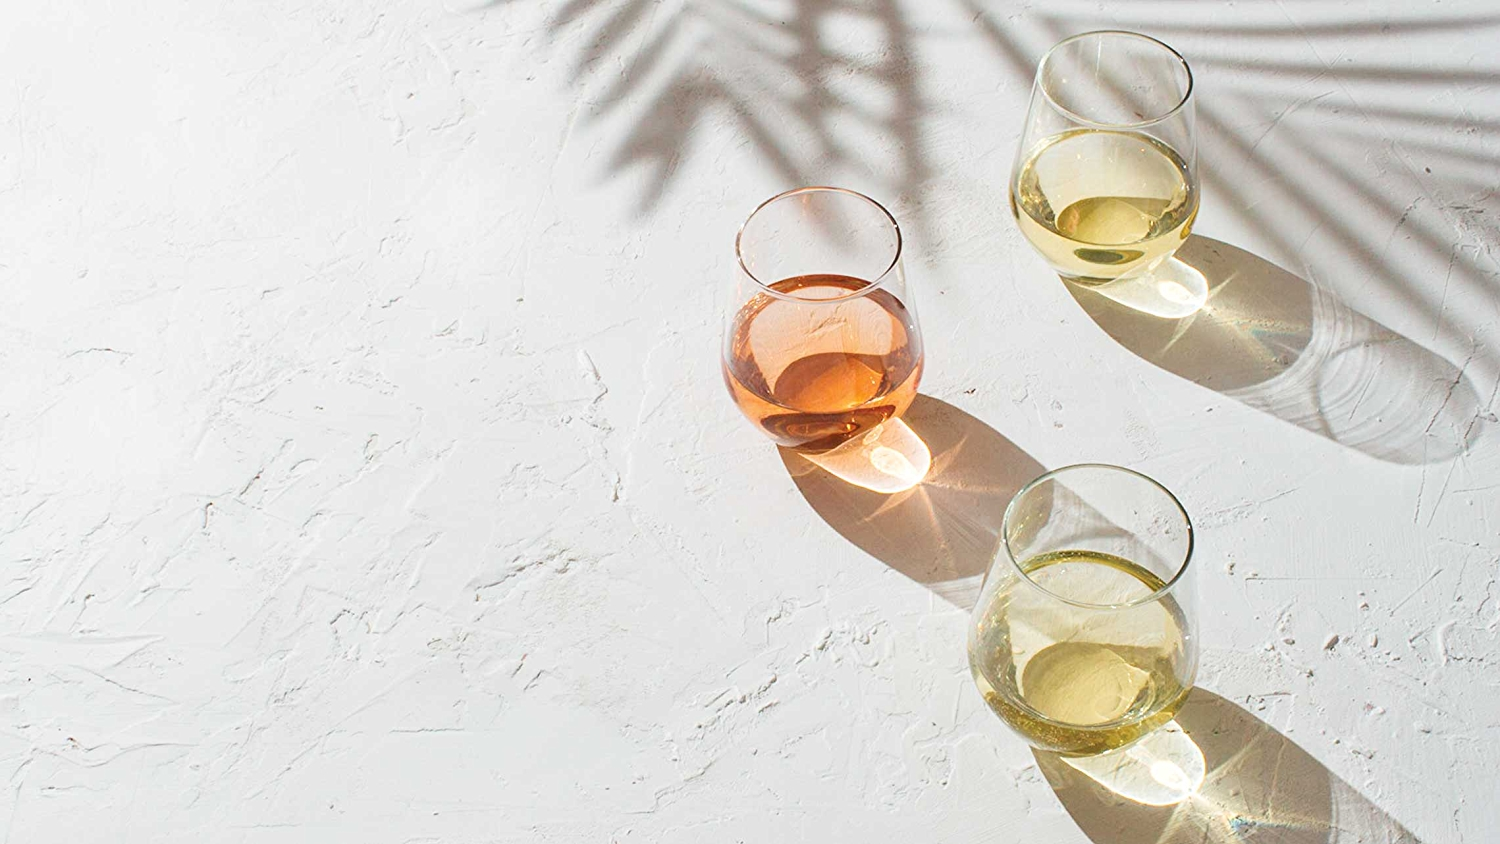 Wine glasses under palm tree